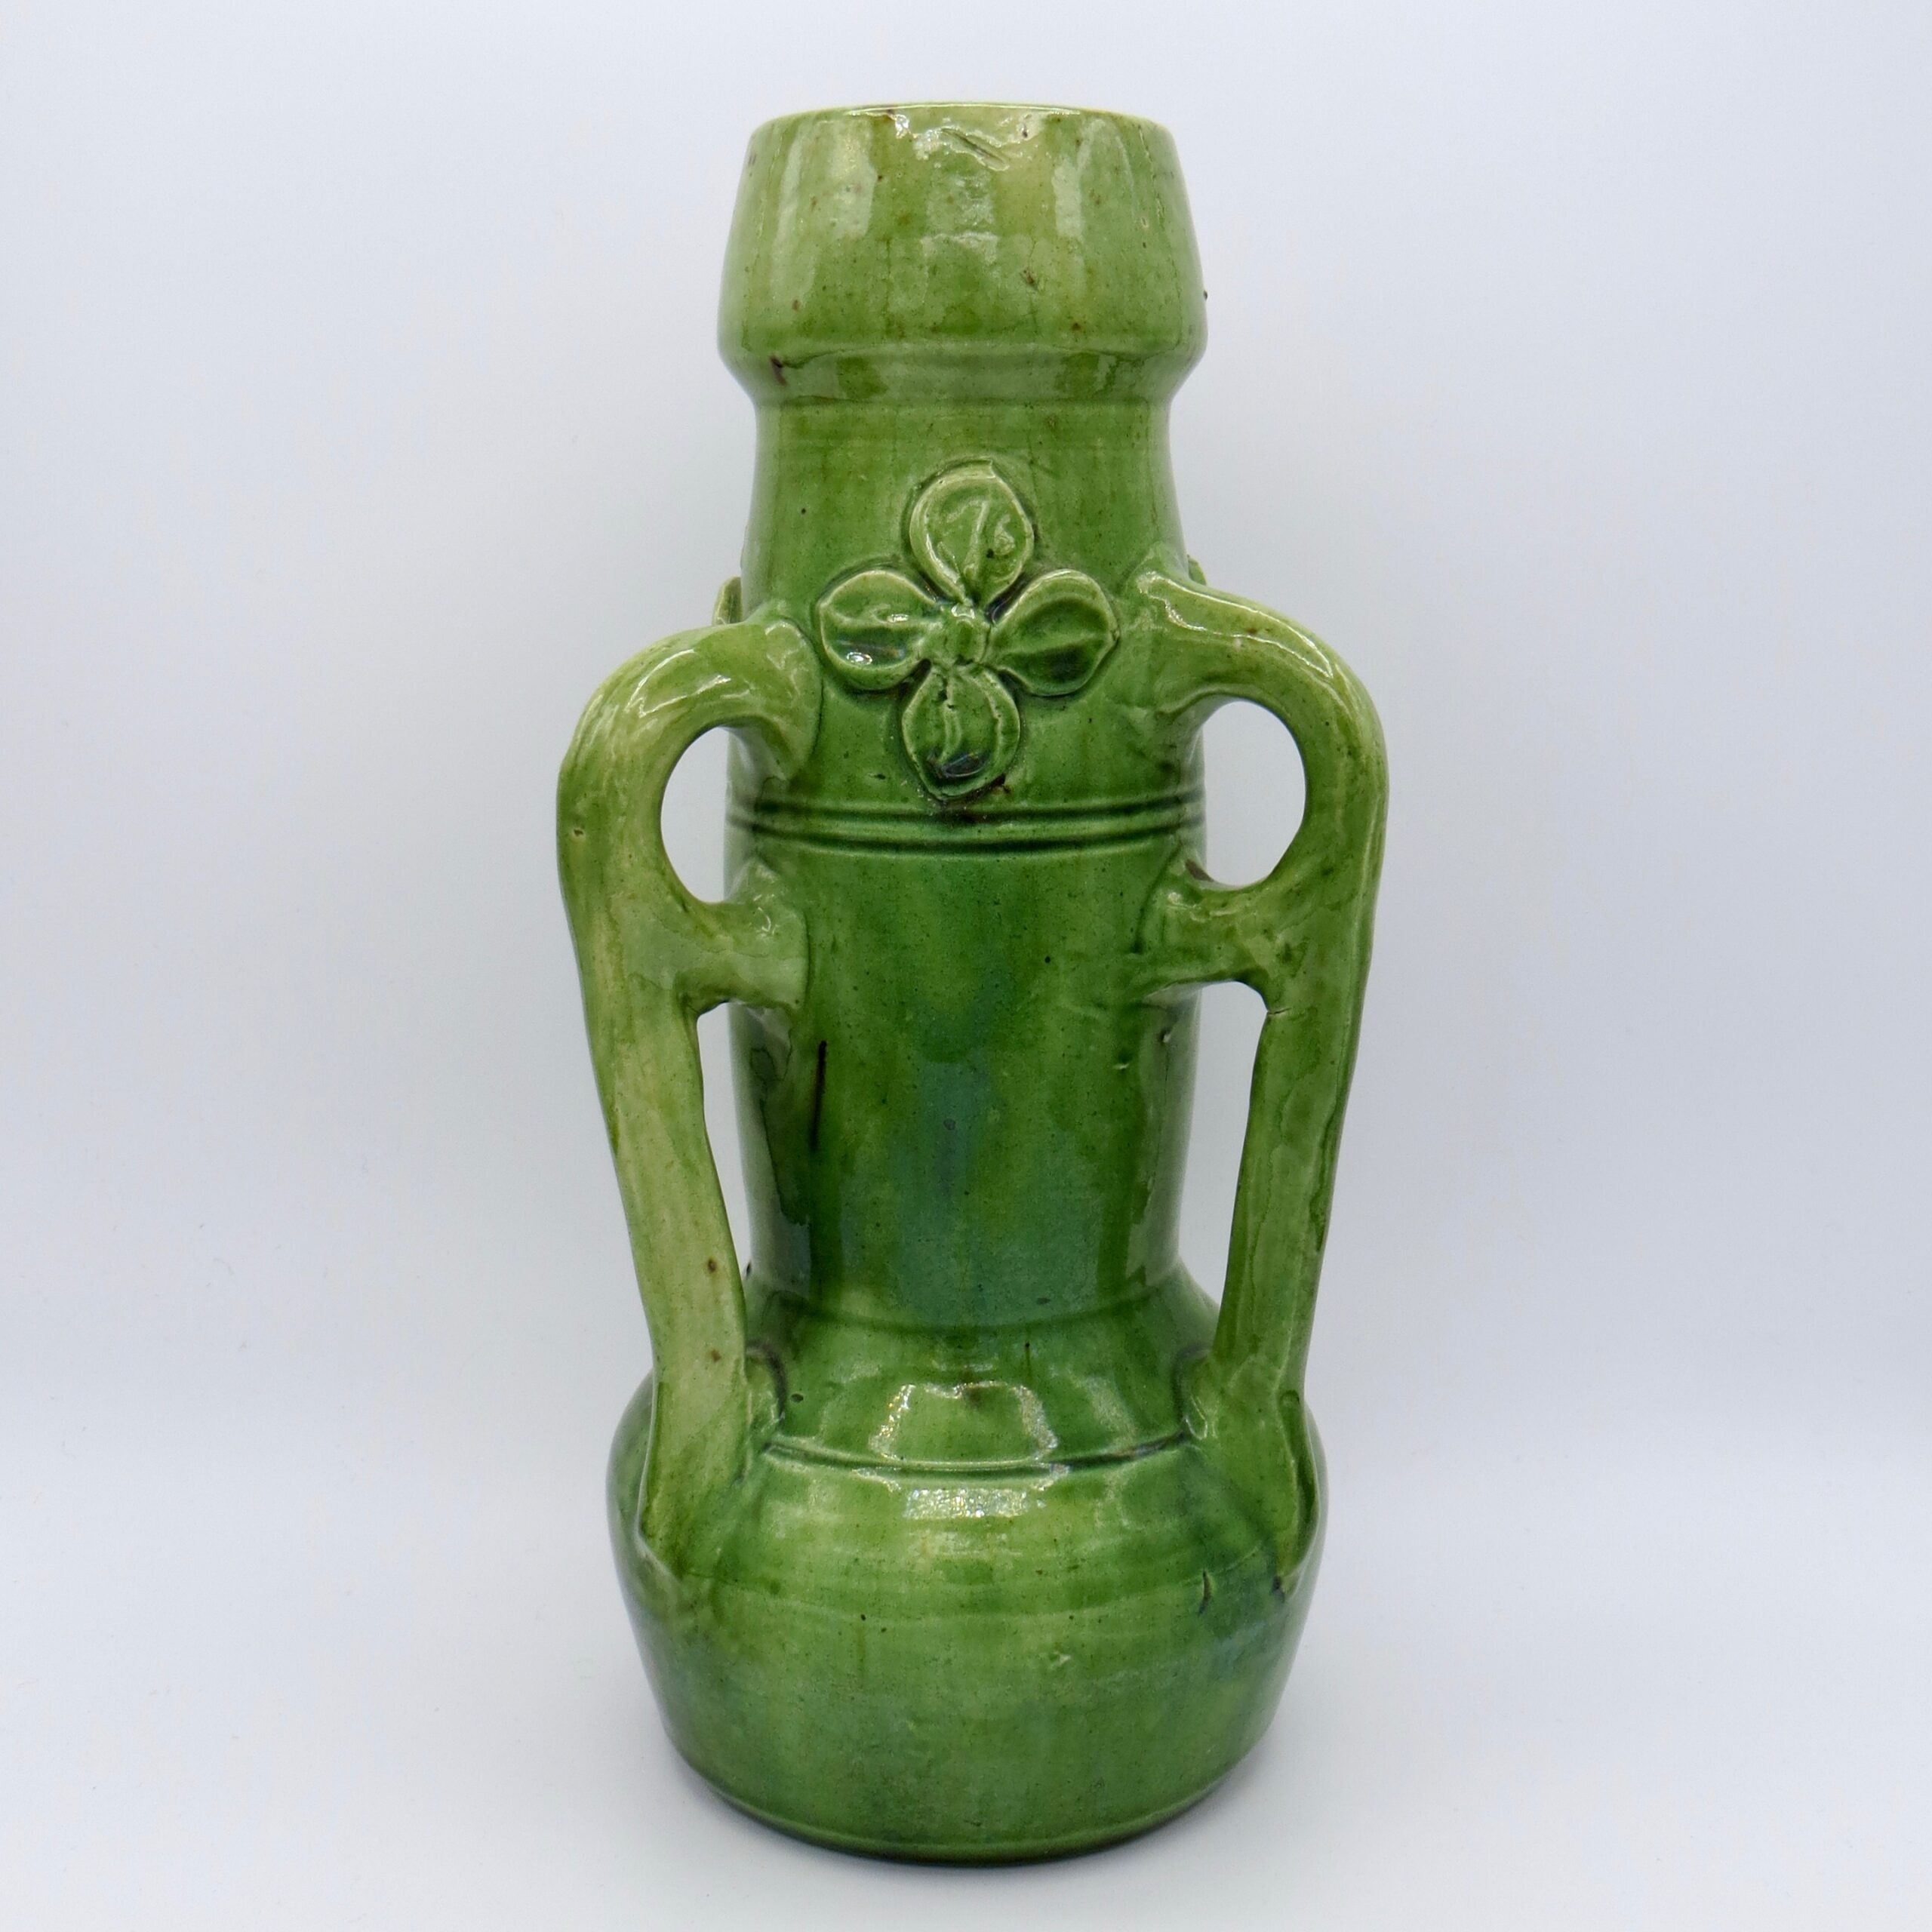 Green Arts & Crafts Vase